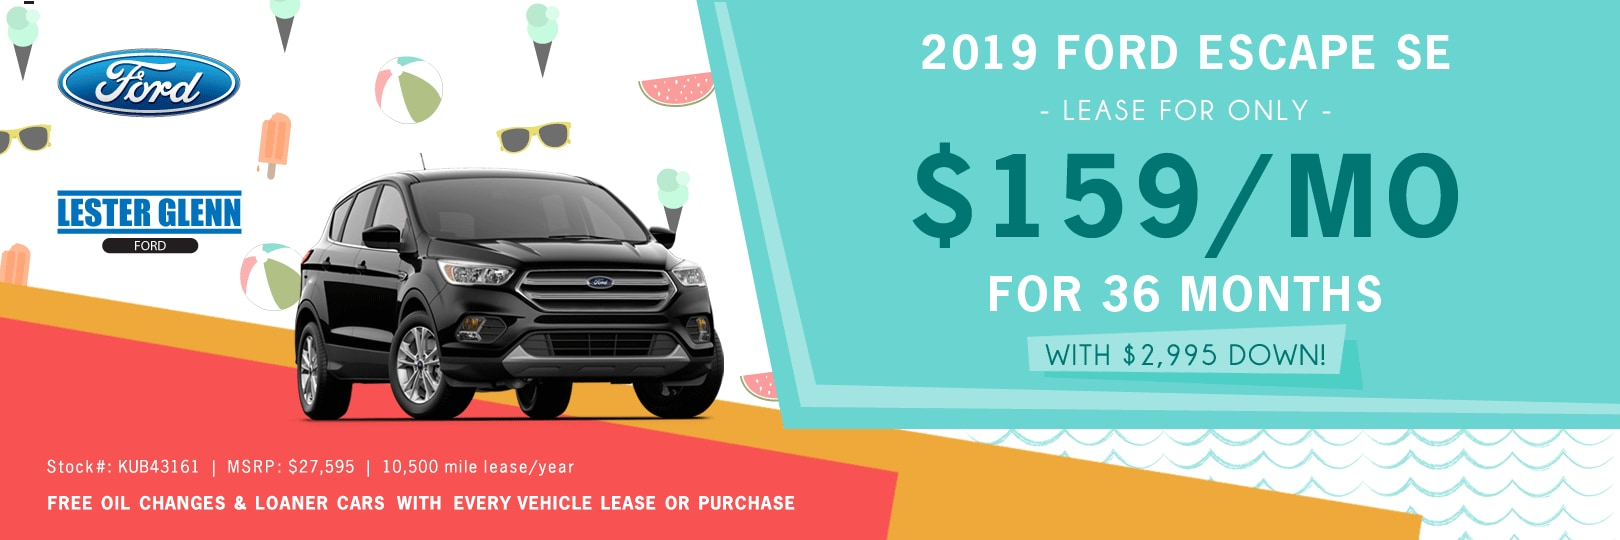 Ford Escape Lease >> 2019 Ford Escape Lease And Finance Specials Lester Glenn Ford